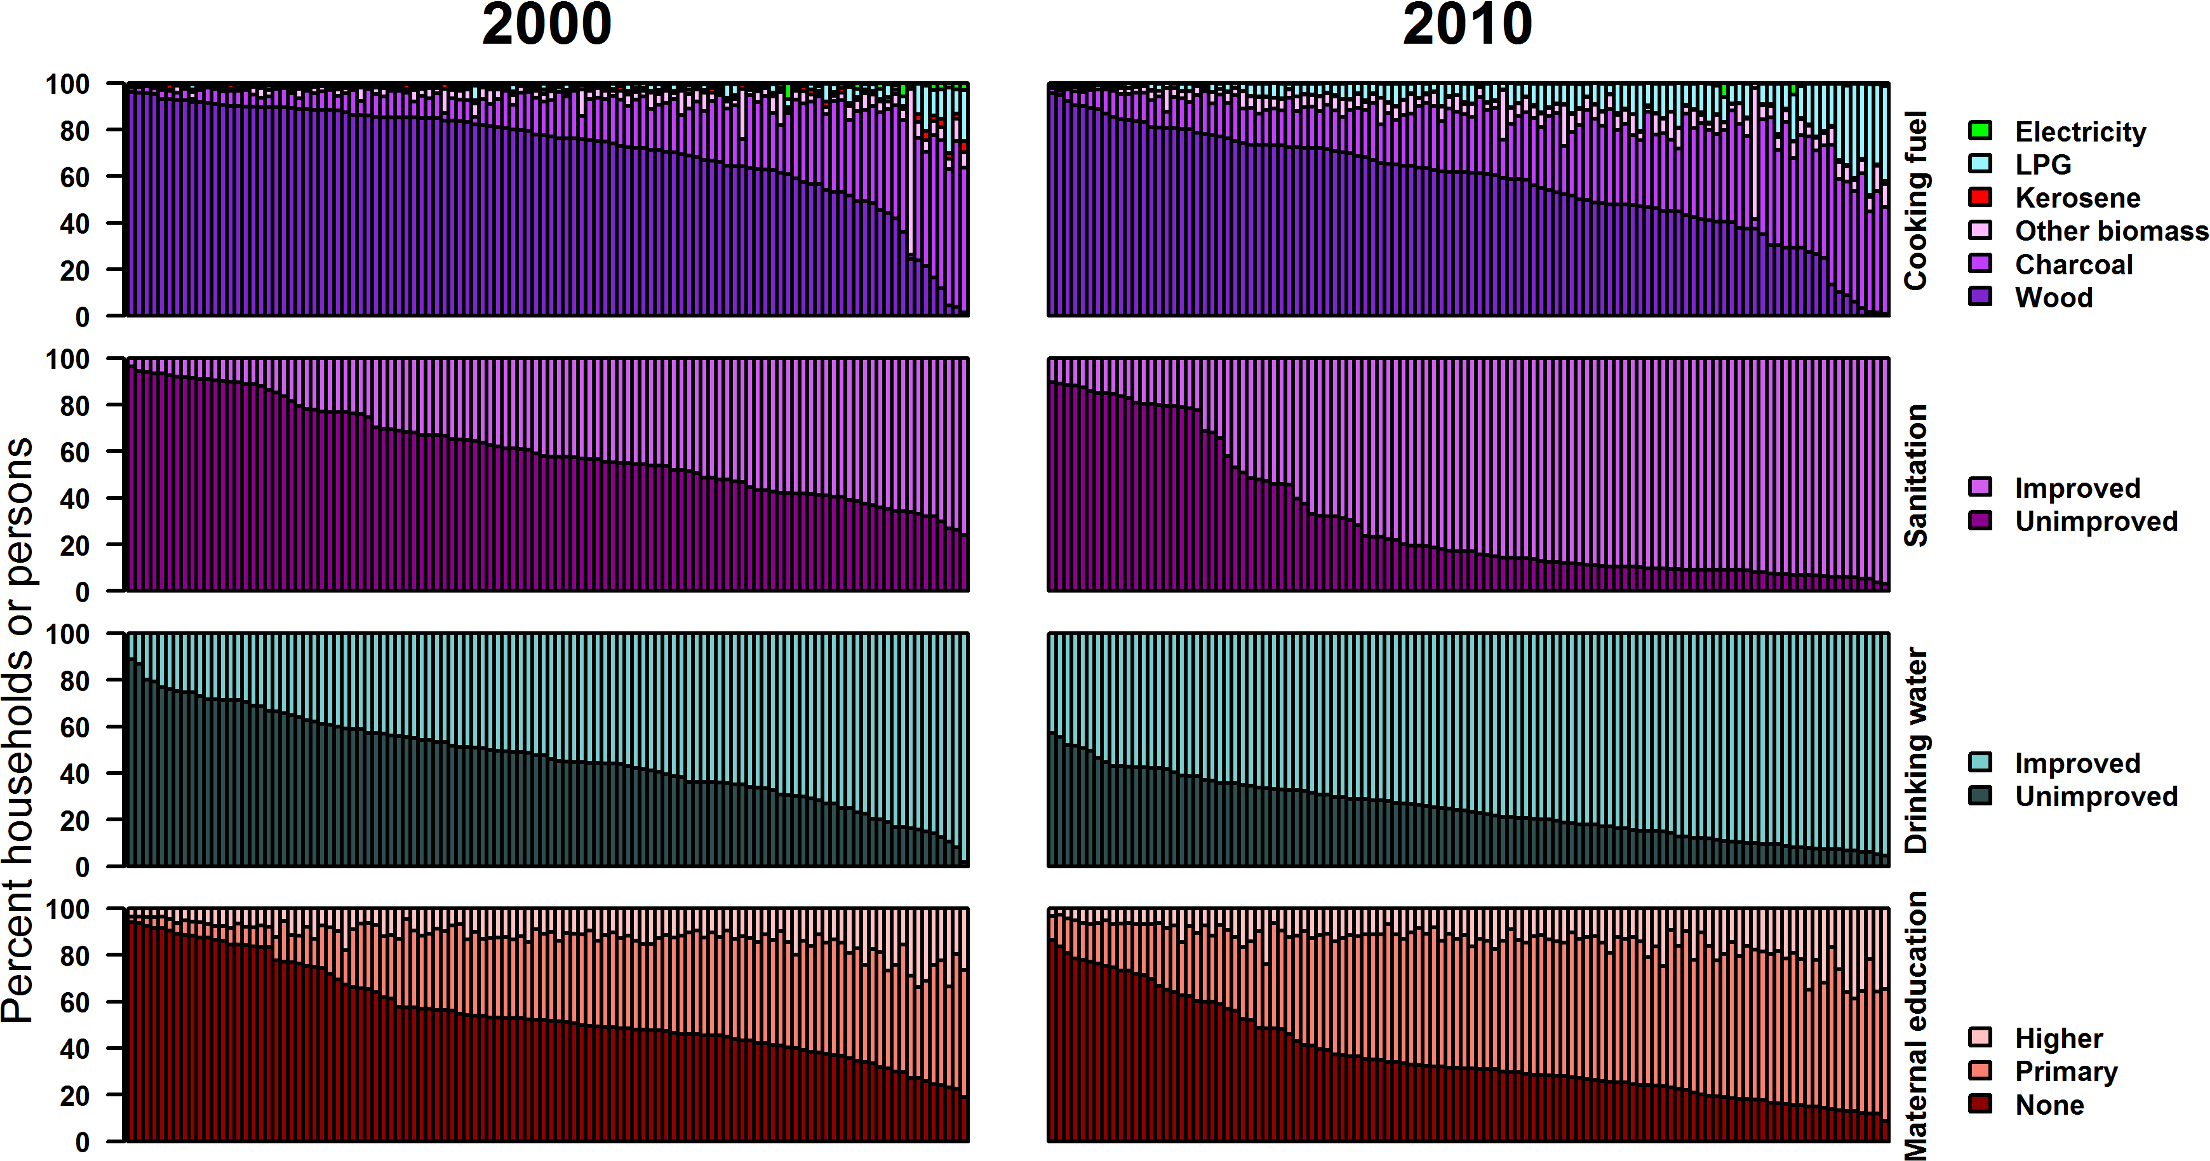 Distributions of household cooking fuel, sanitation facility, drinking water source, and maternal education by district in 2000 and 2010 (percent of households or persons).